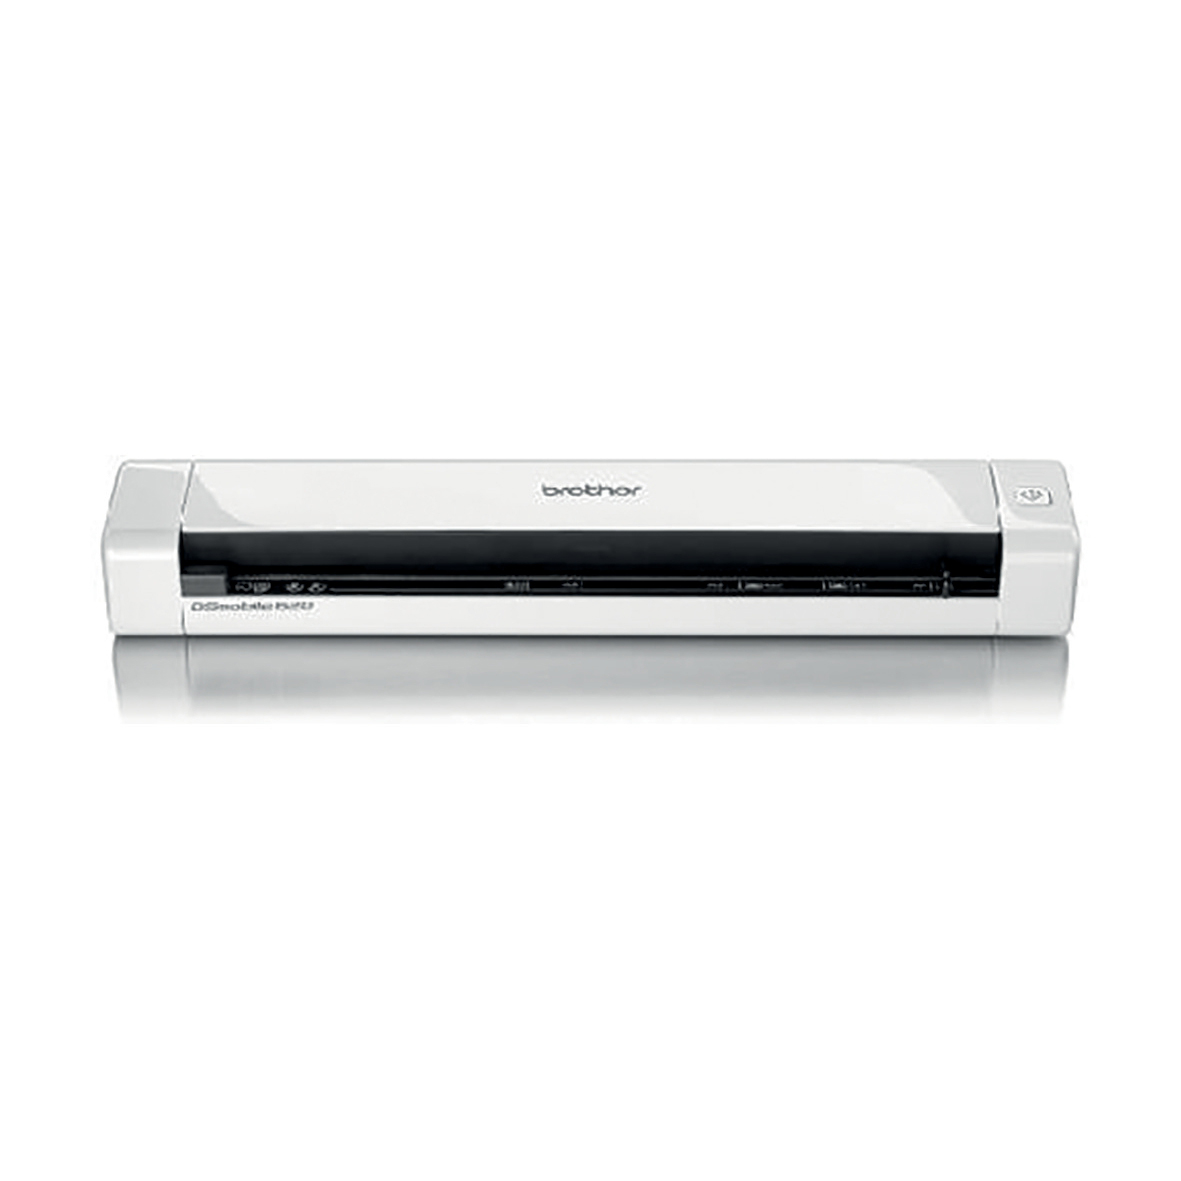 Image for Brother DS-620 Mobile Document Scanner Colour 7.5ppm 600x600dpi Ref DS620Z1